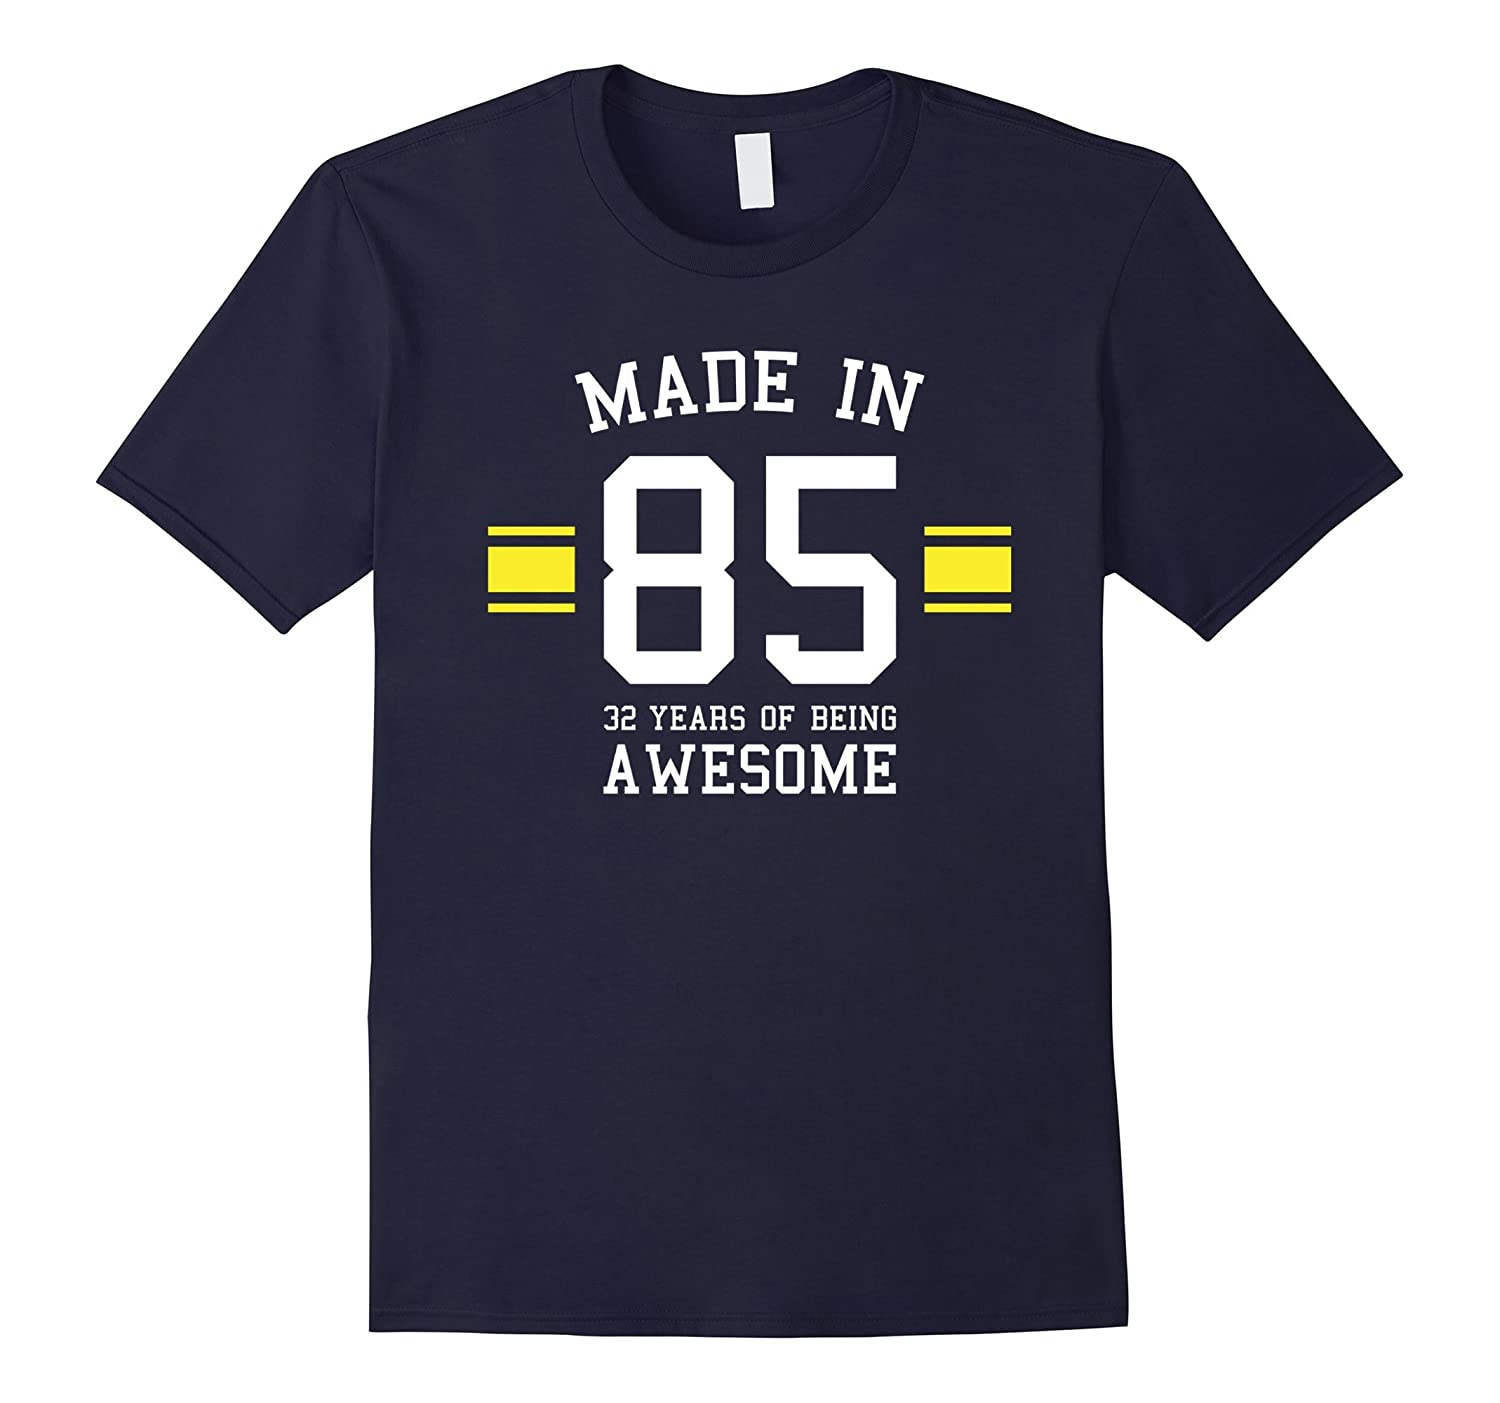 Made In 85 - 32 Years Of Being Awesome Birthday Shirt-CD